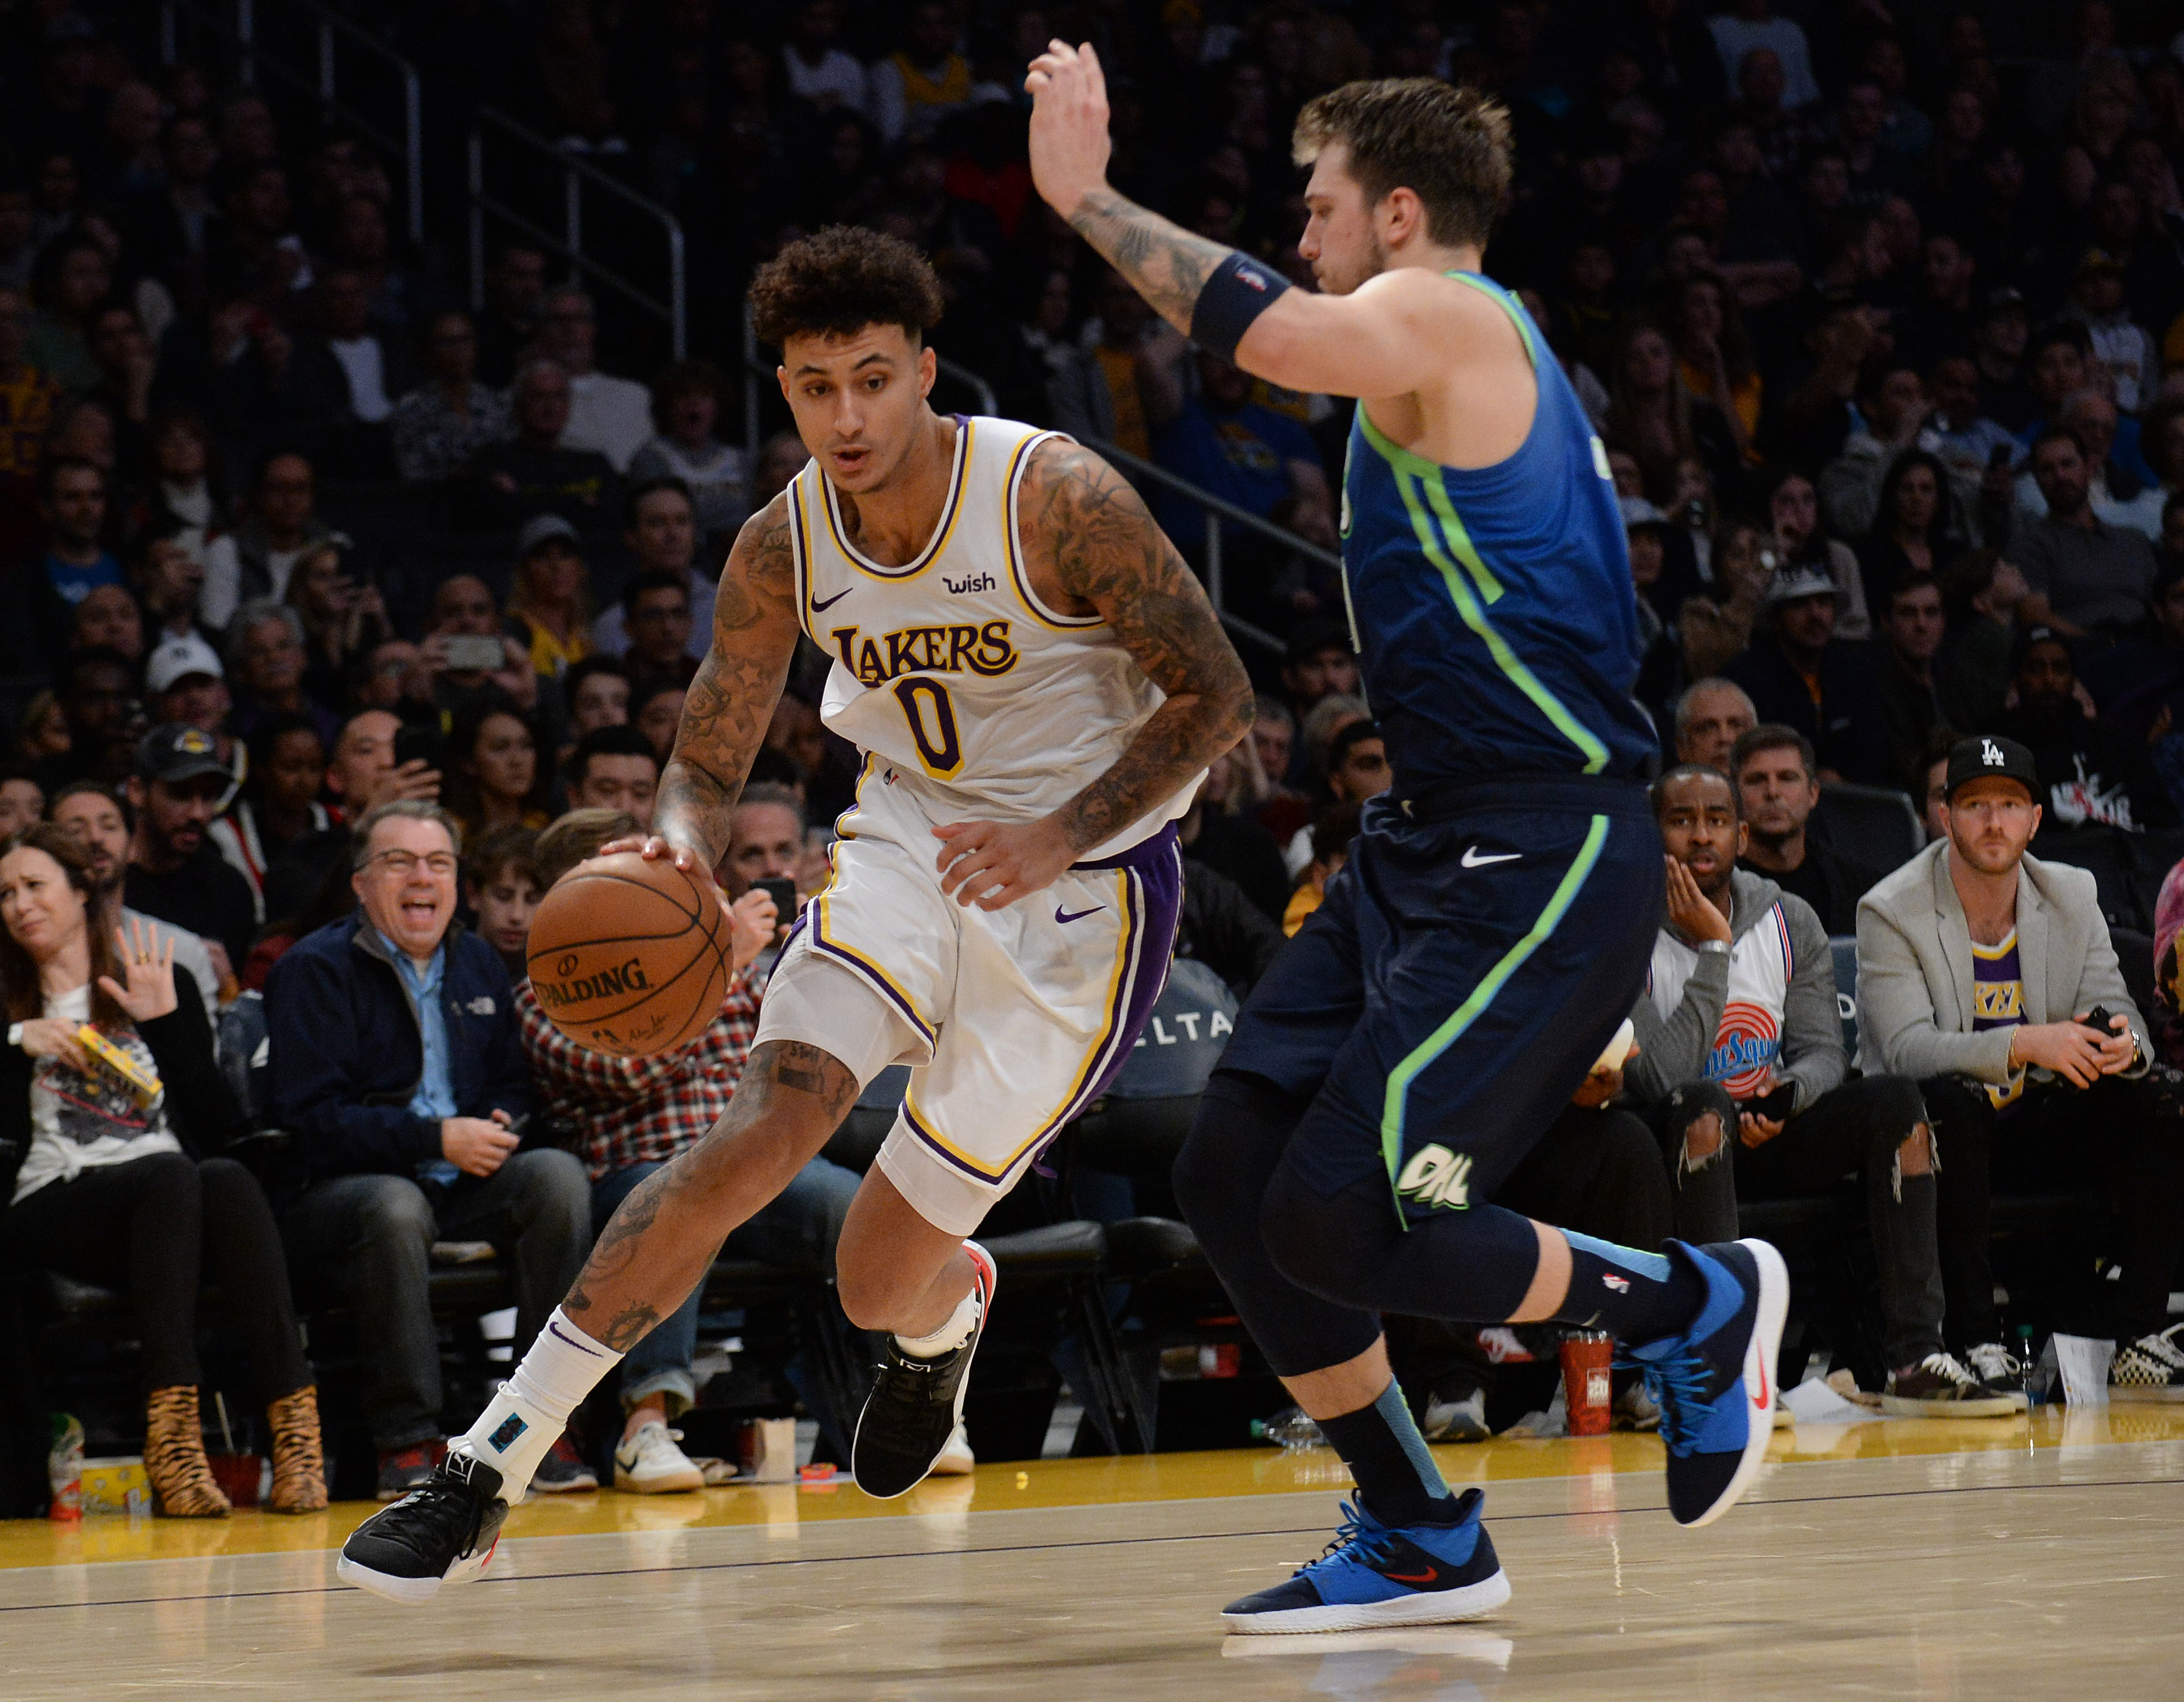 Preview Lakers Host Mavs Looking For Second Straight Win